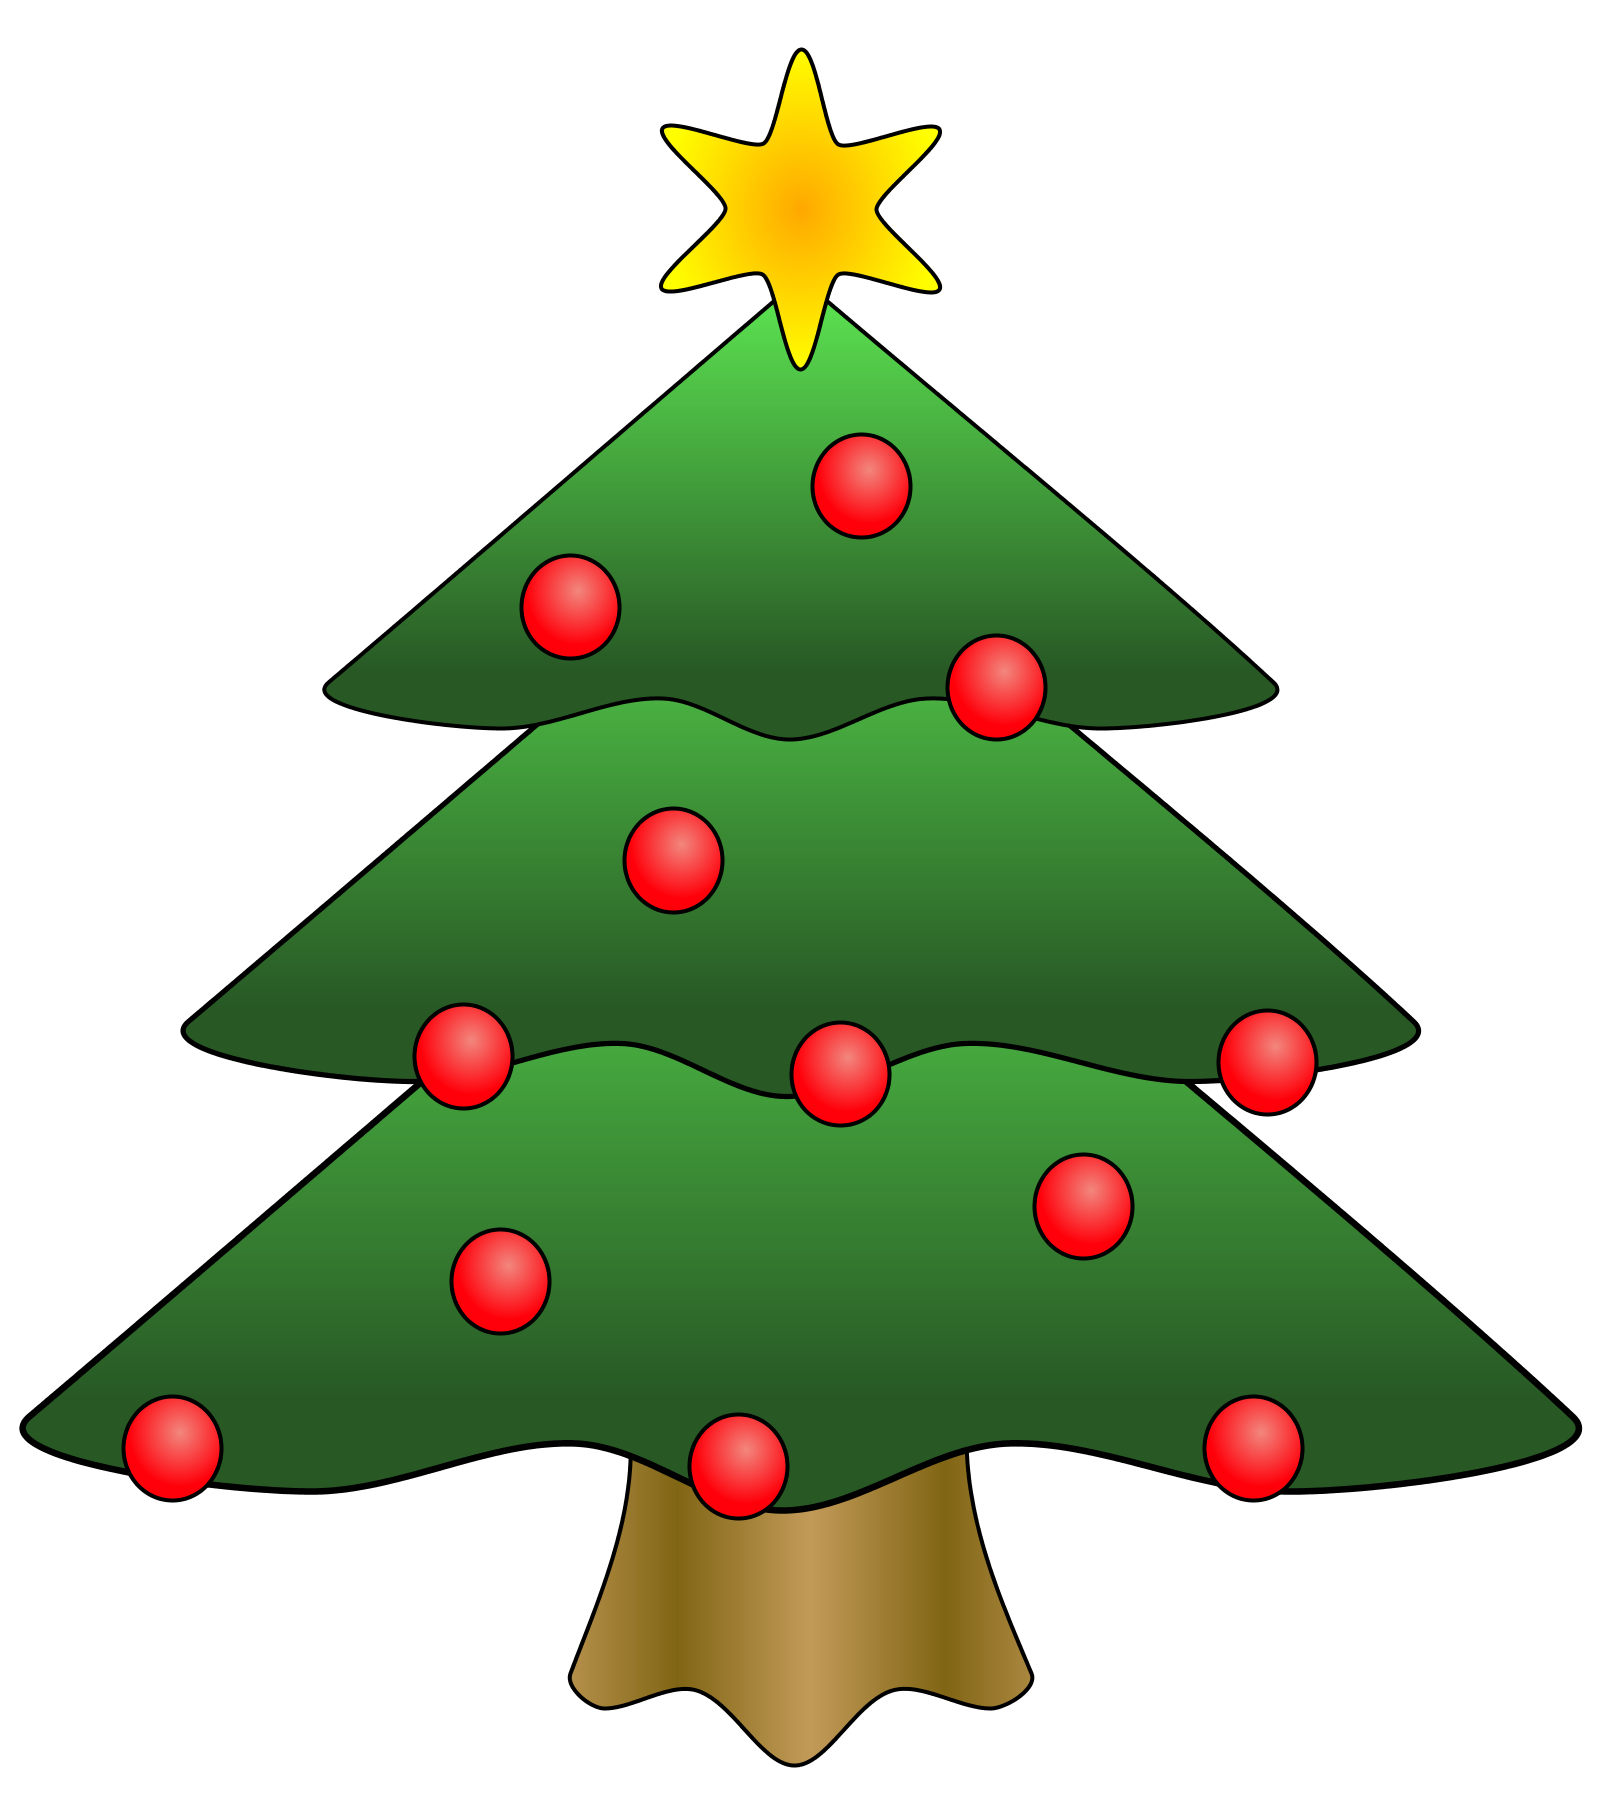 Christmas tree star clipart banner free stock Free clipart google tree - ClipartFest banner free stock